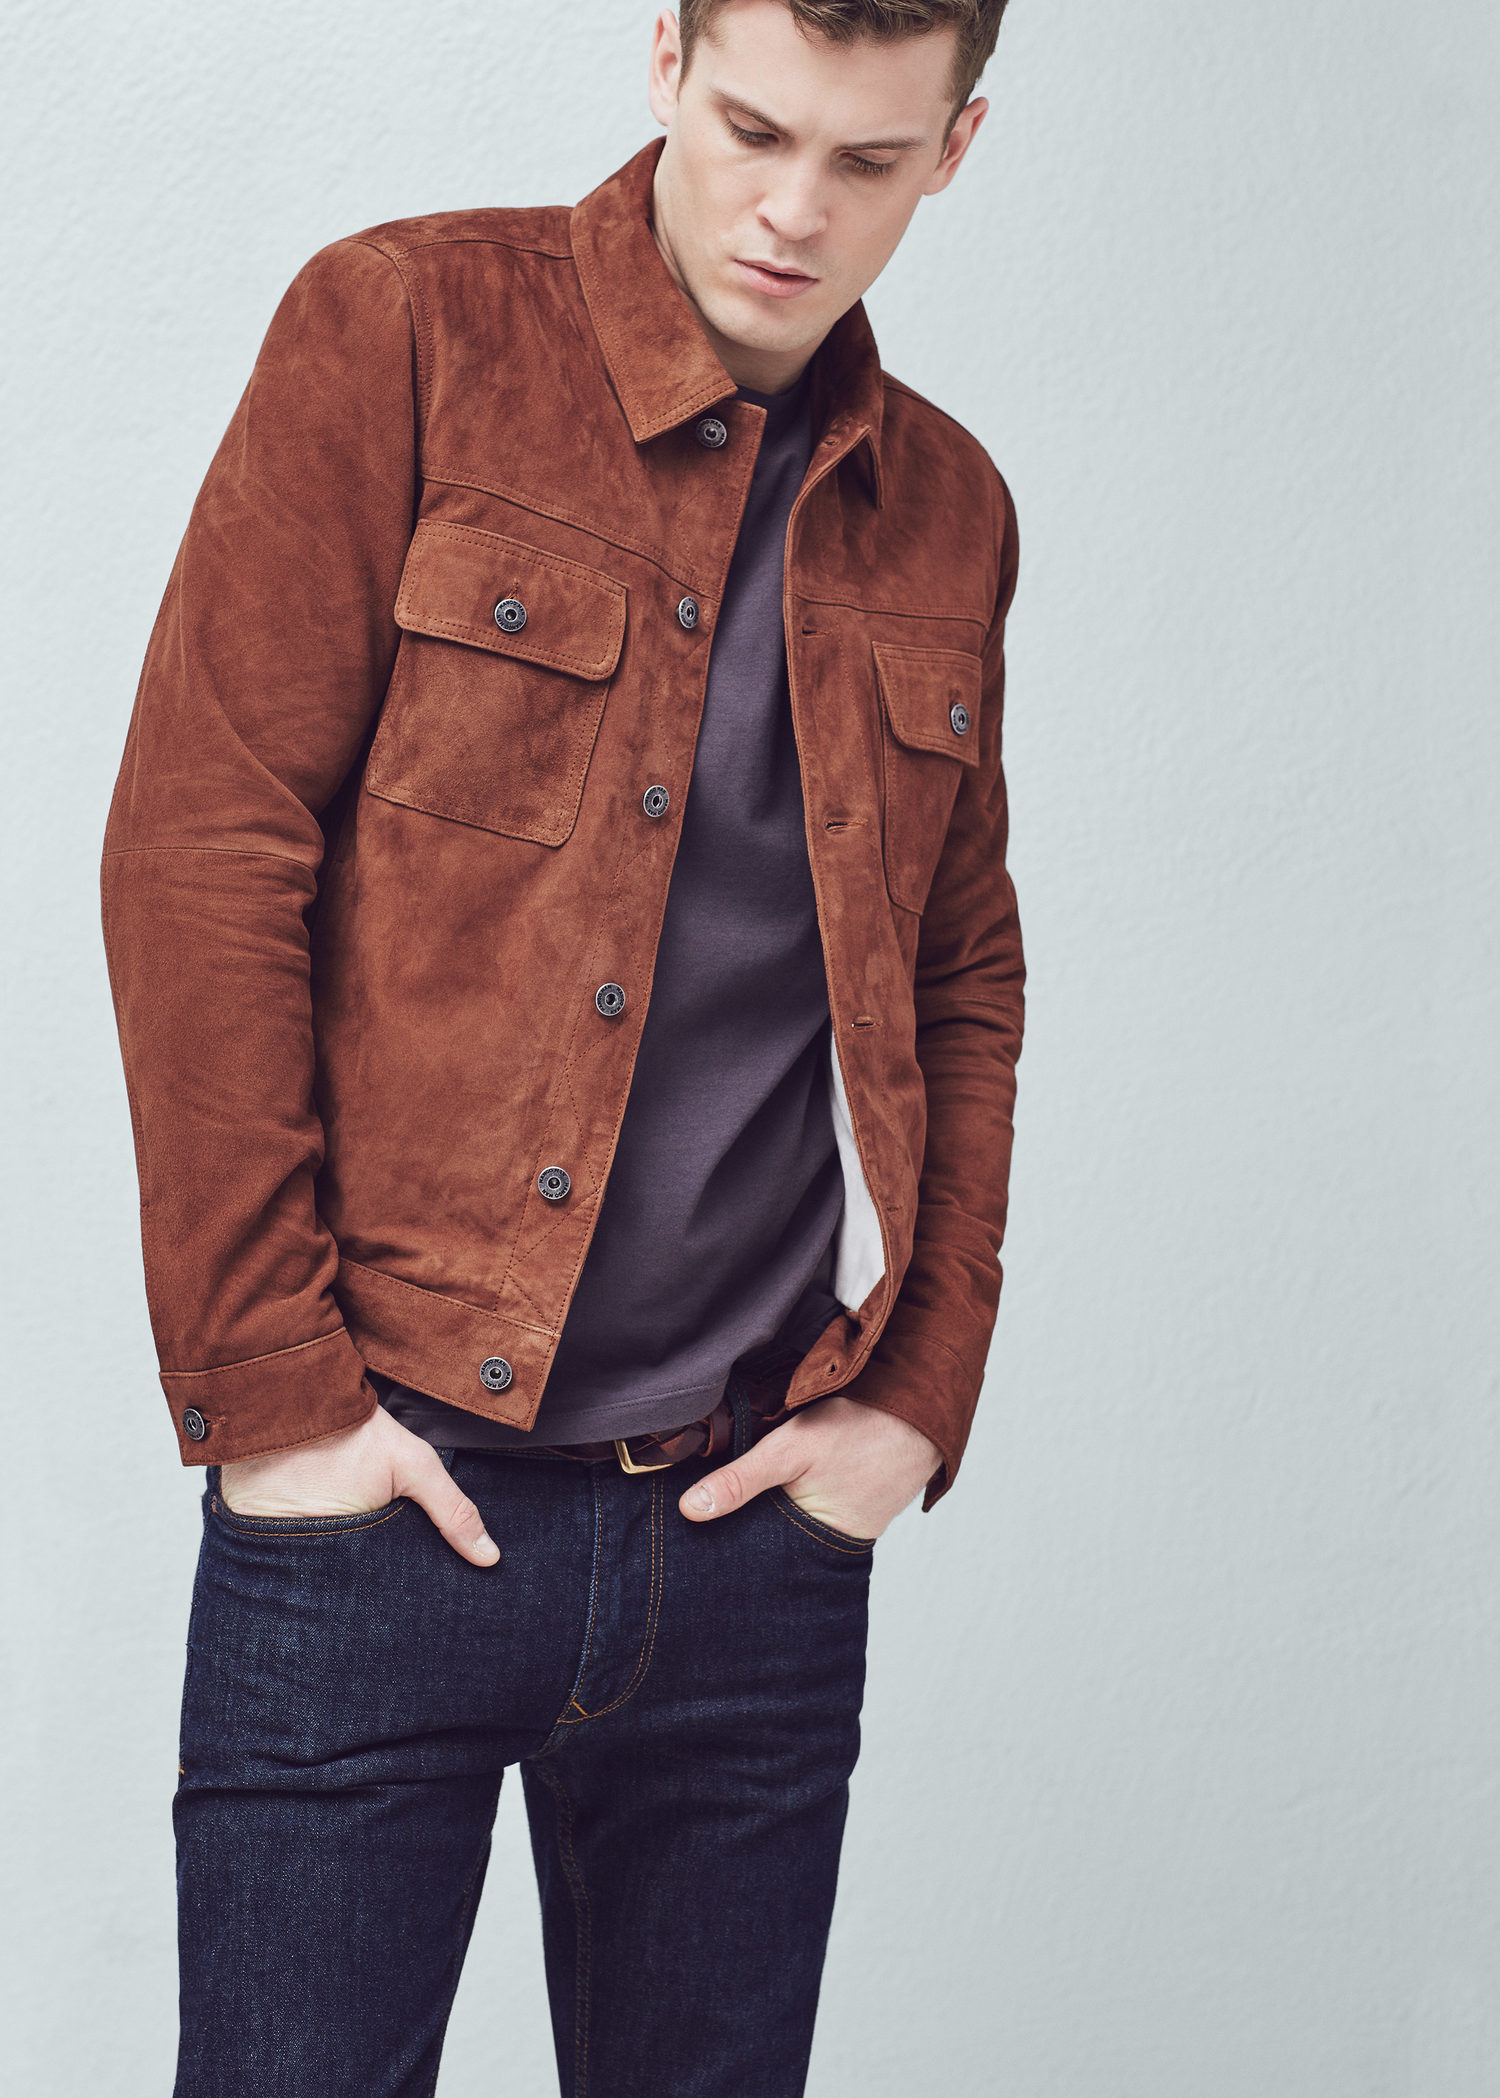 details for entire collection a few days away Mango Flap-pocket Suede Jacket in Cognac (Brown) for Men - Lyst